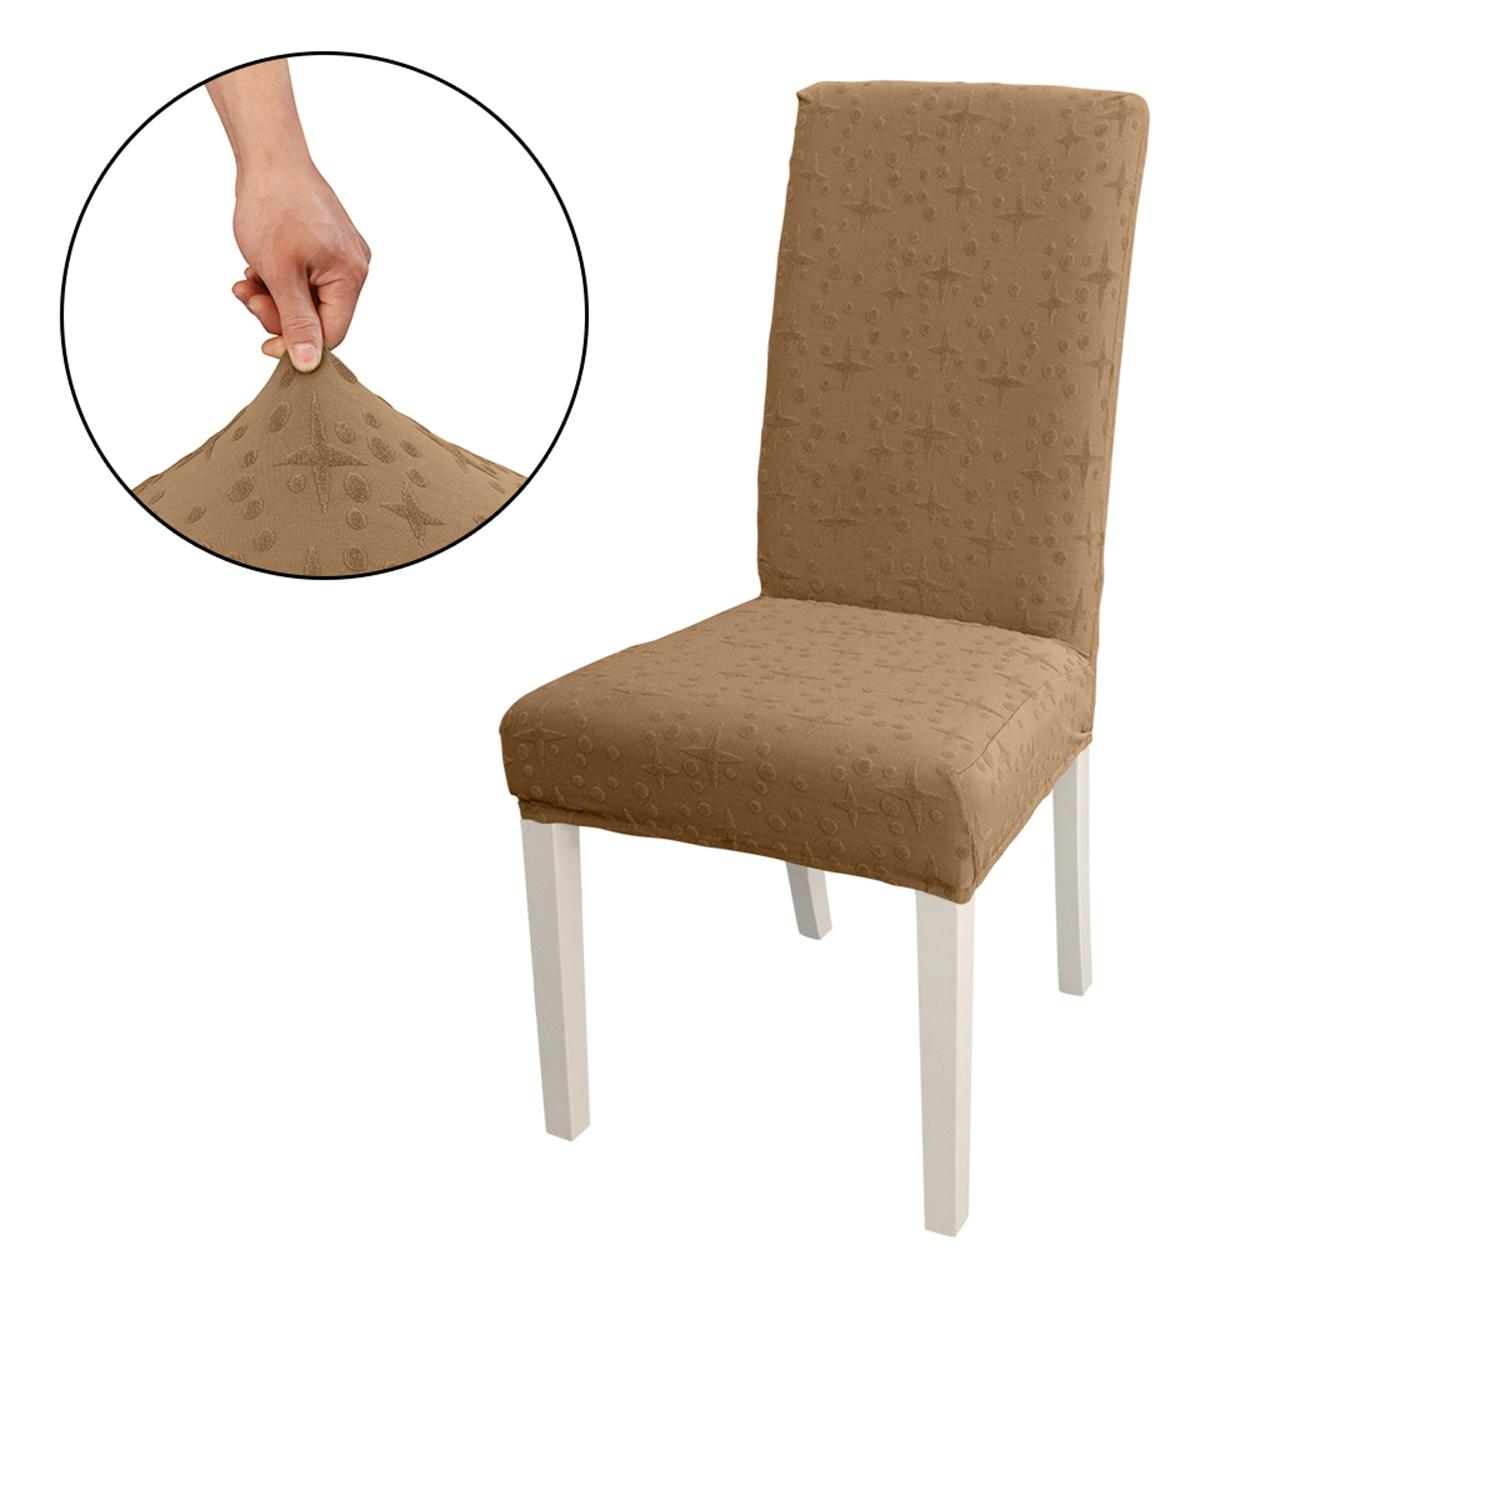 DiningChairSlipcover, HighStretchRemovableChairCoverWashableChairSeatProtectorCover, JacquardPattern, ChairCoverSlipcoverforHomePartyHotel